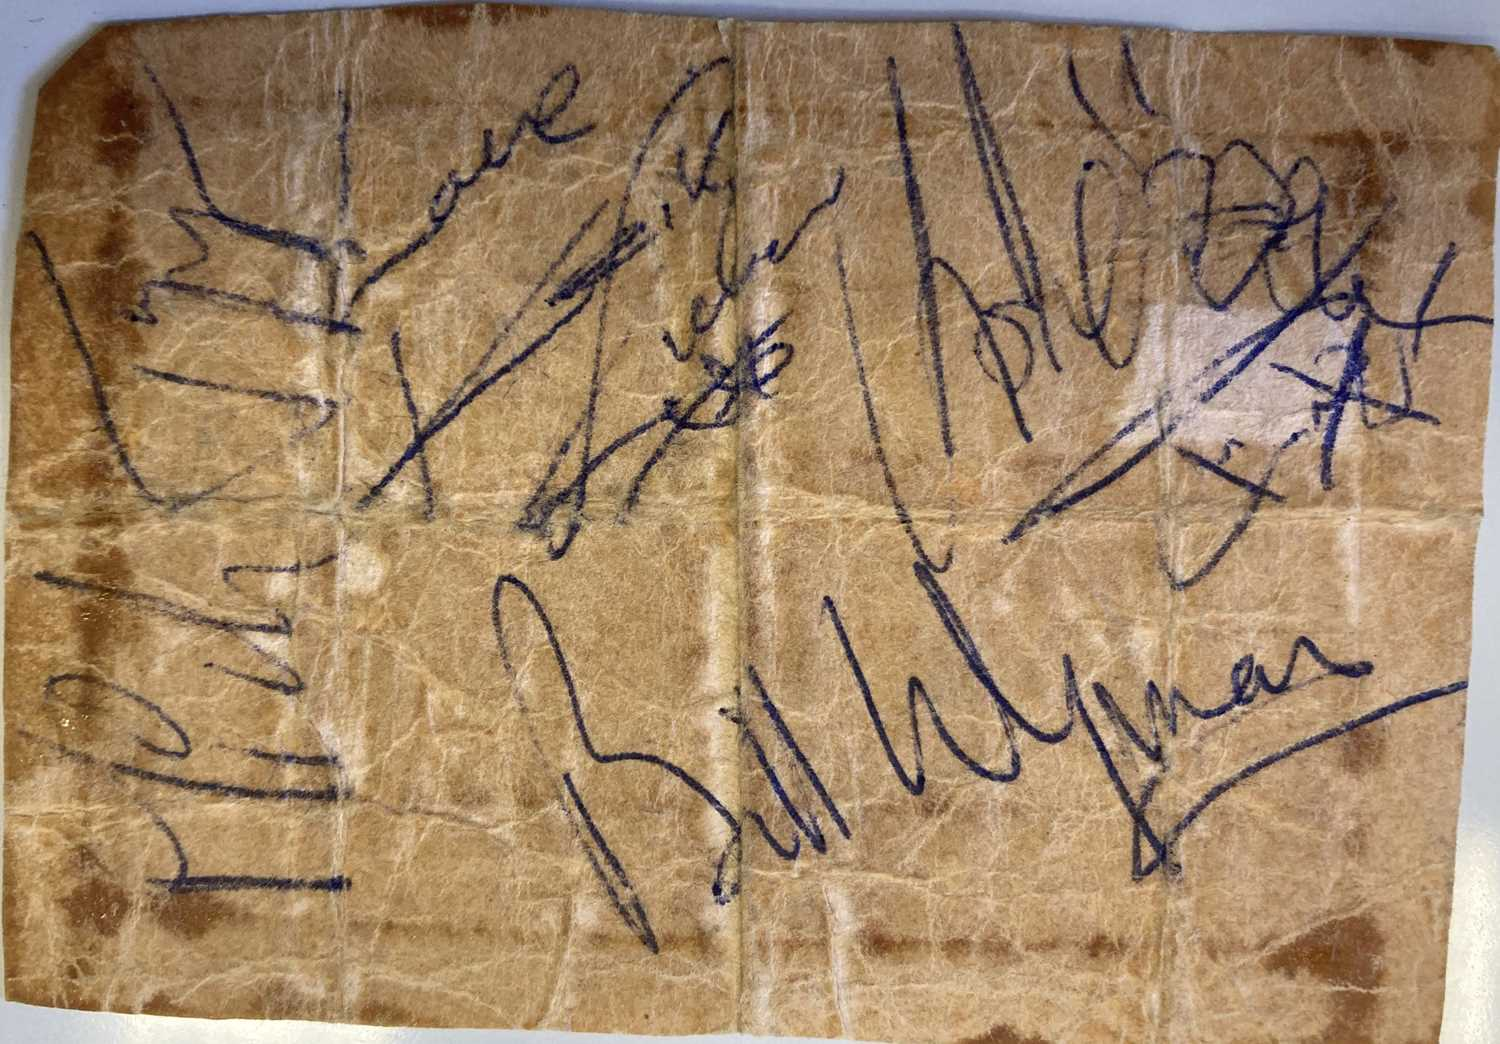 ROLLING STONES - SIGNED PAGE, - Image 2 of 2